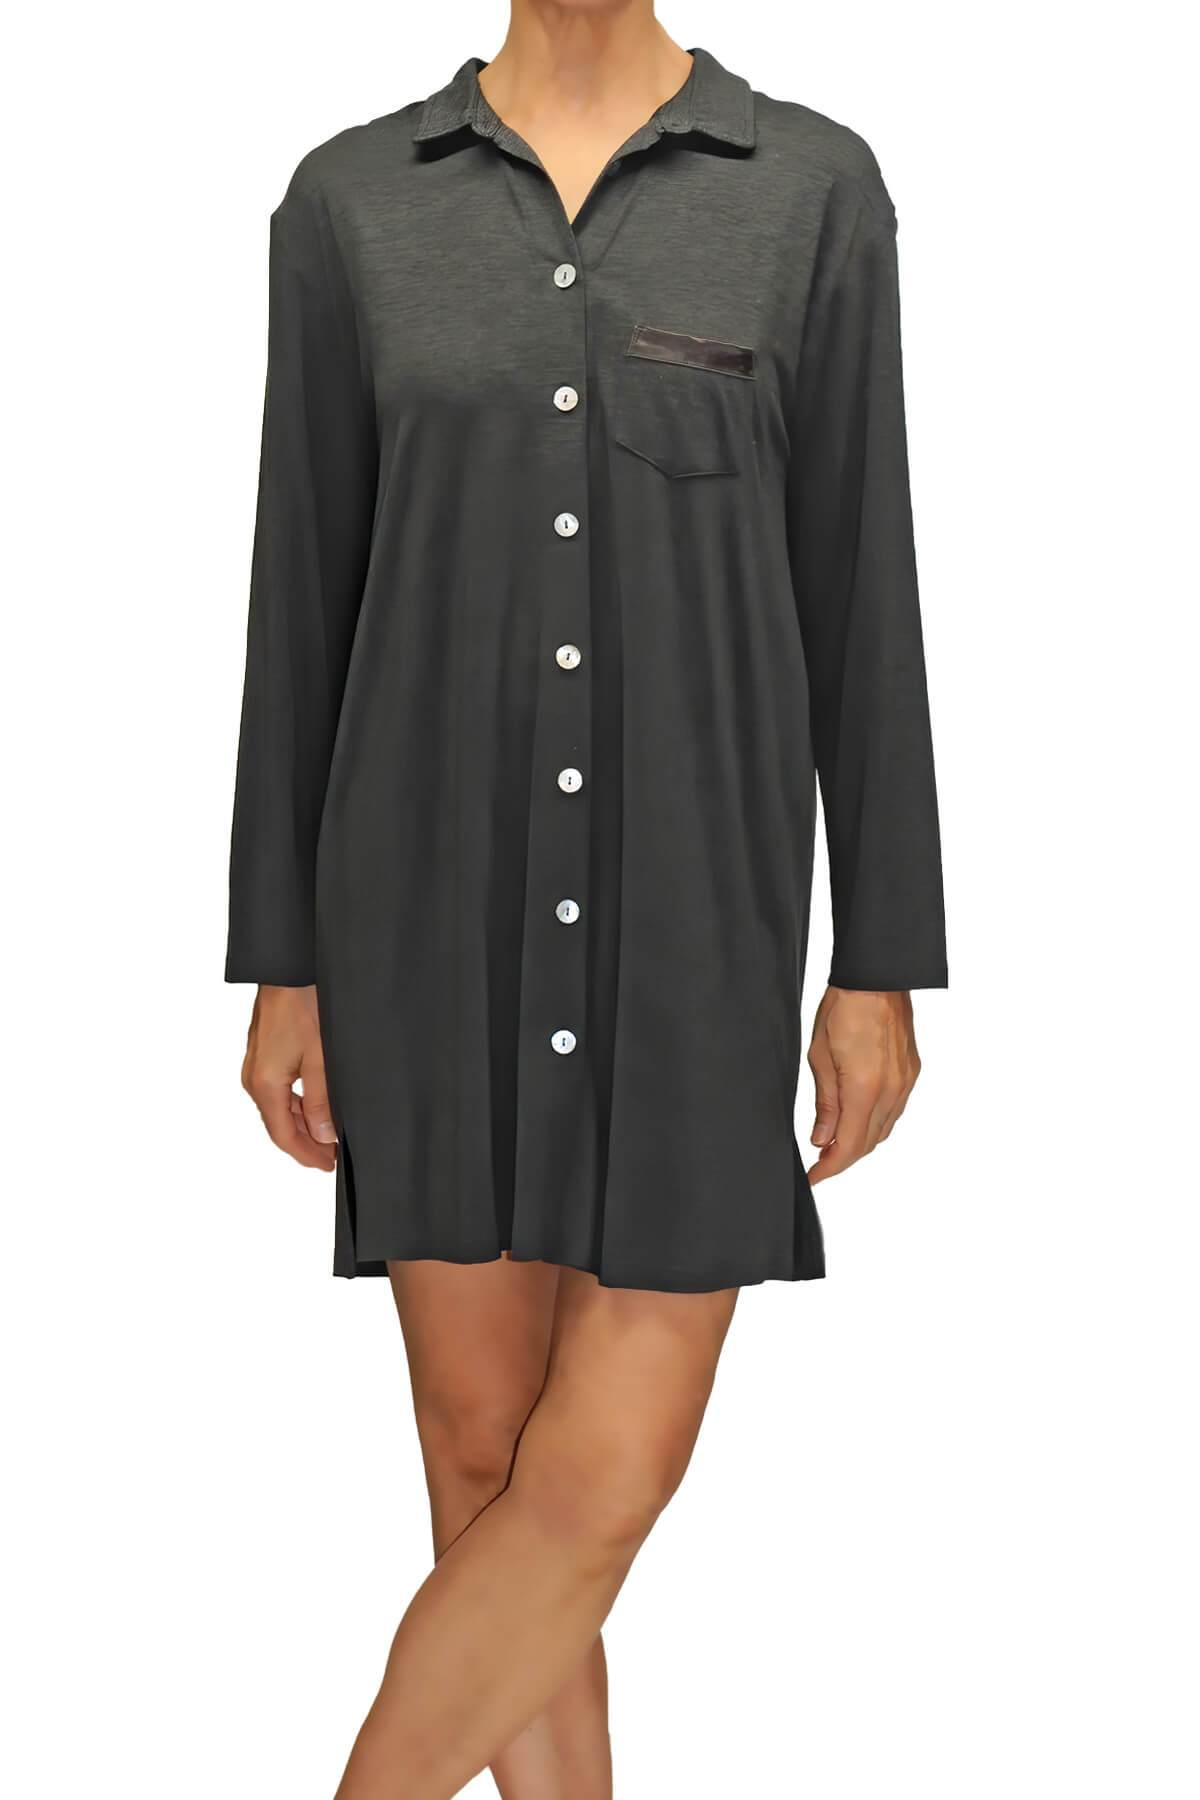 Megan Lounge Shirt - Charcoal Gray Mystique Intimates